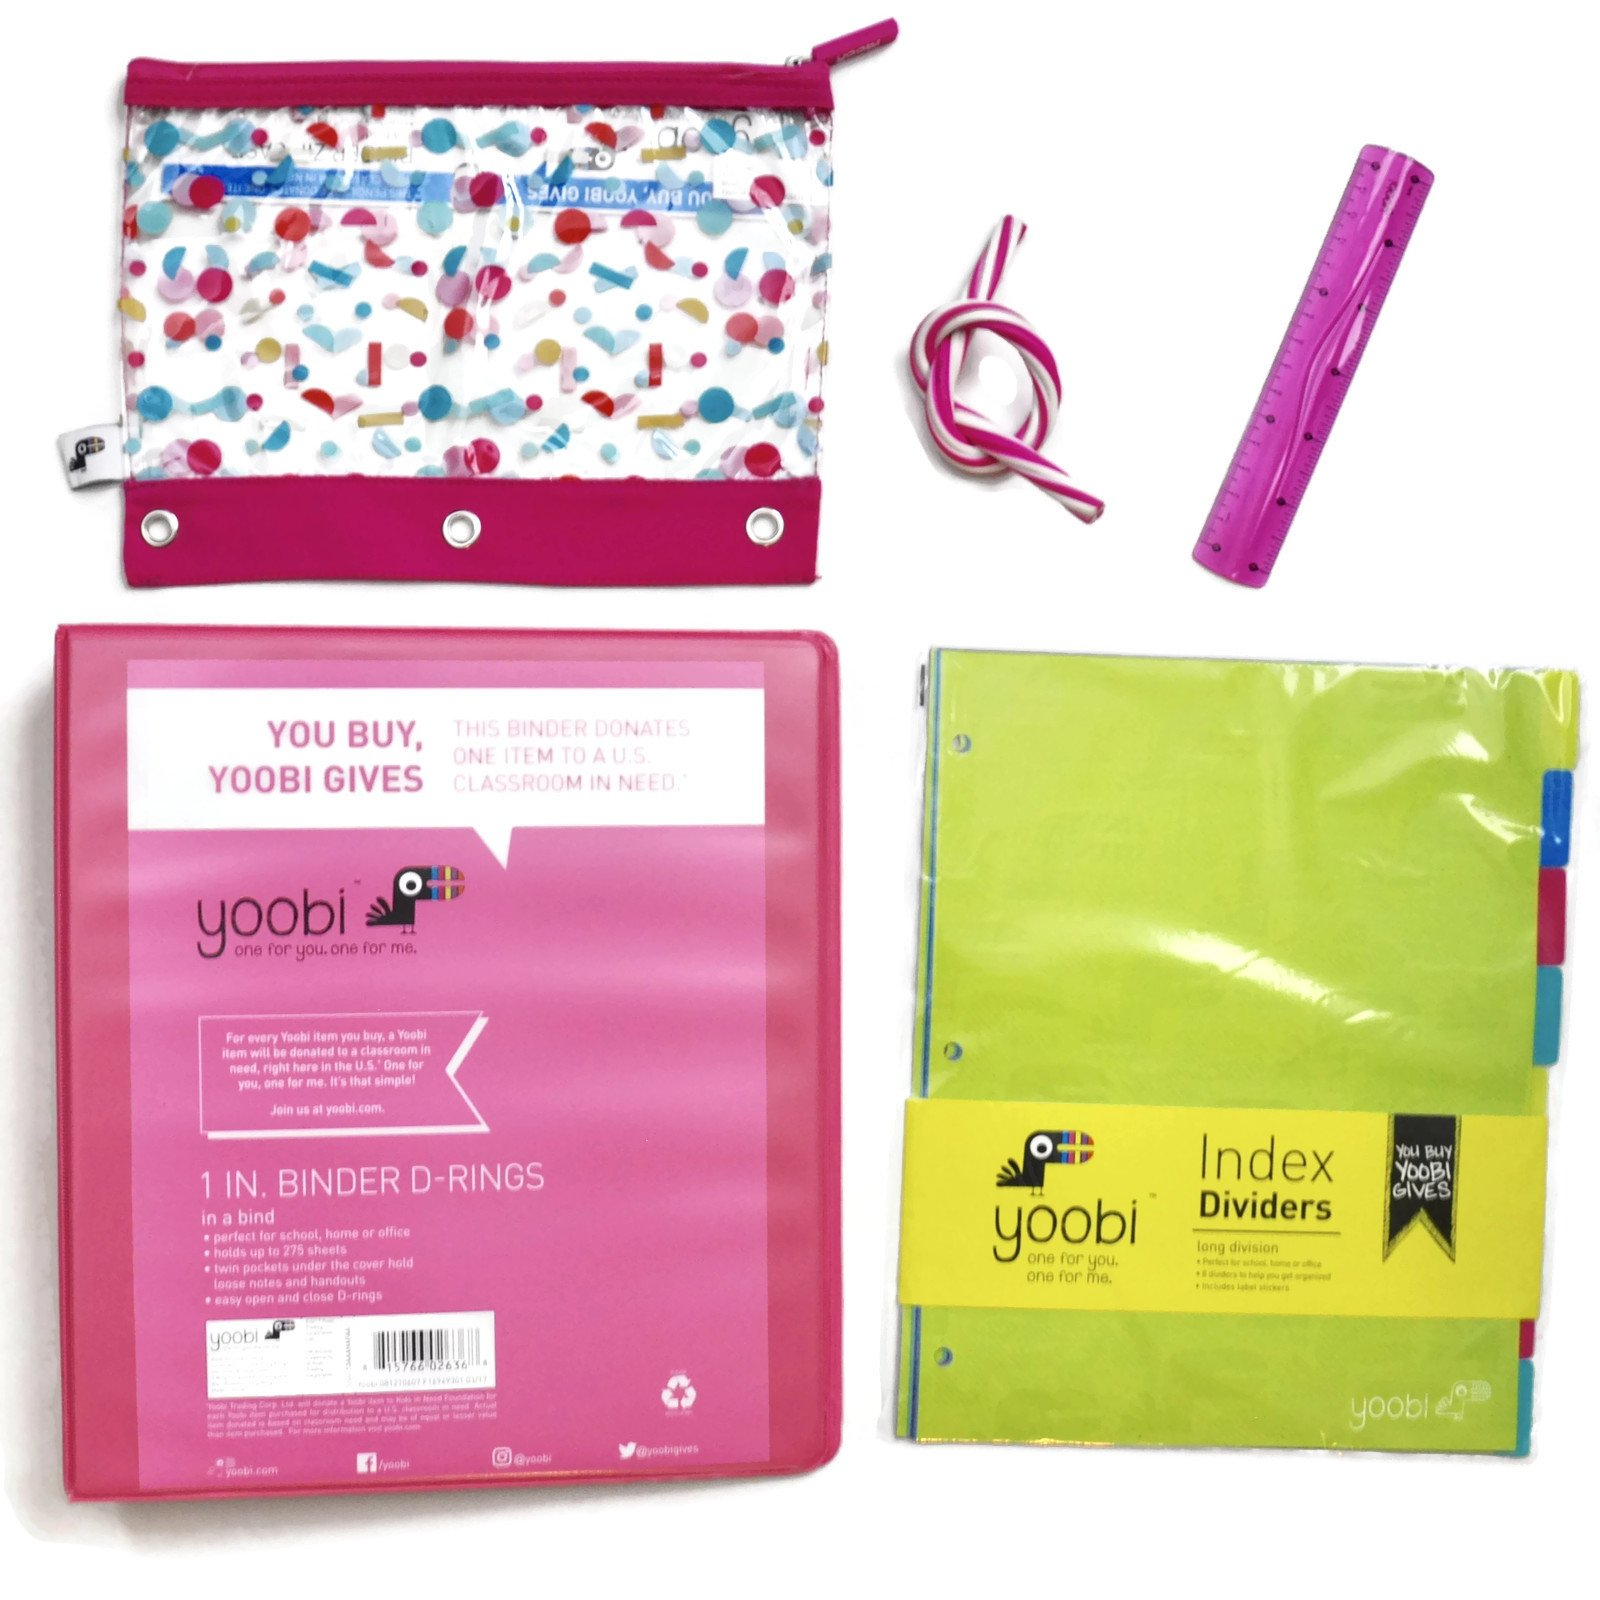 Yoobi Pink School Supply Bundle of 5 Items -1 Inch D-Ring Binder, Binder Zip Case, Eraser & Colorful 8 Tab Index Dividers by Yoobi (Image #1)